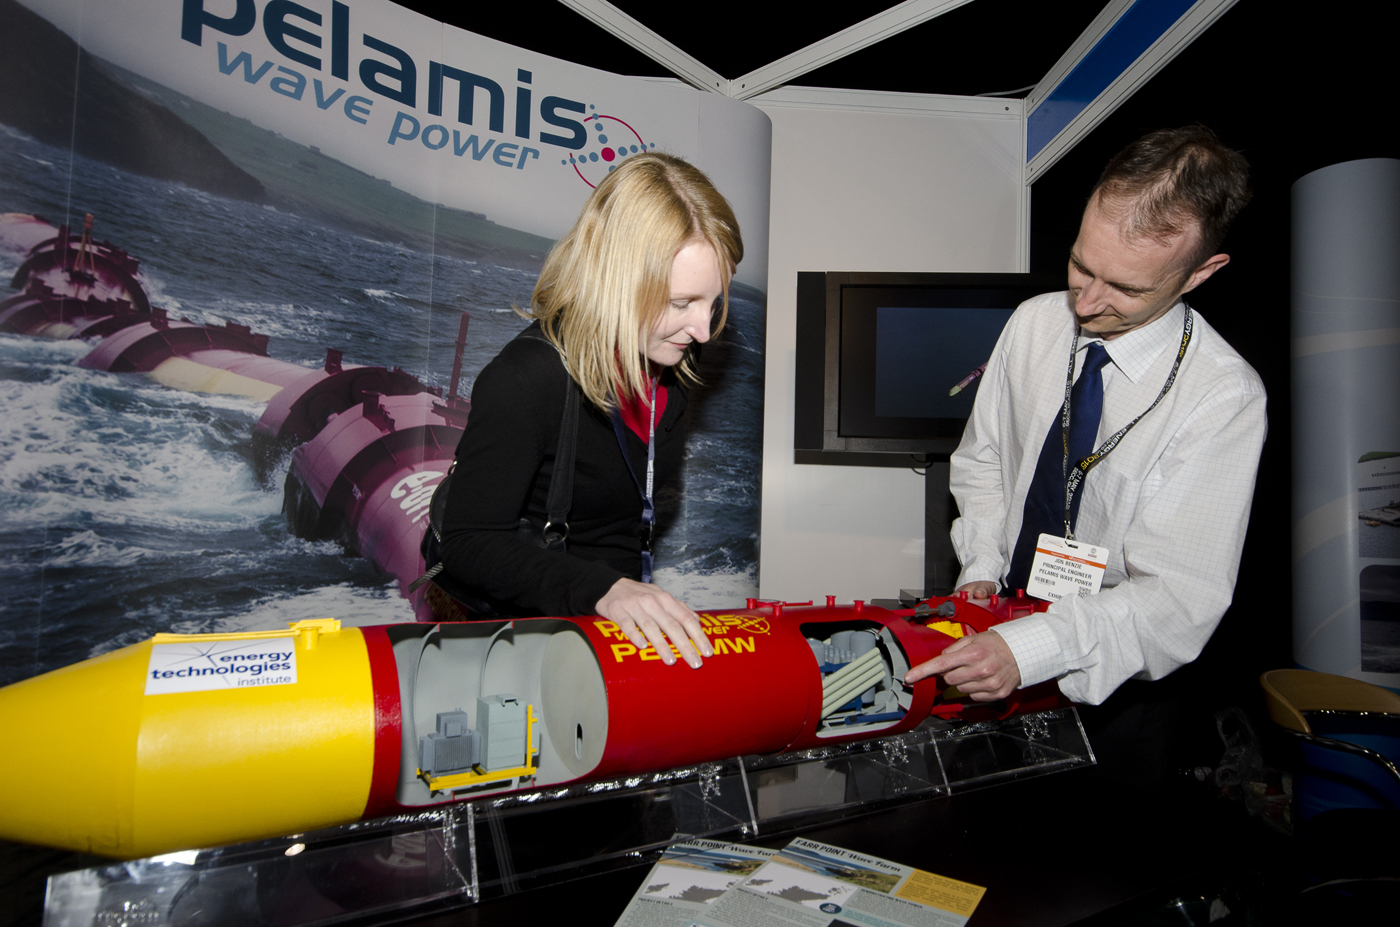 Pelamis at last year's exhibition in Aberdeen